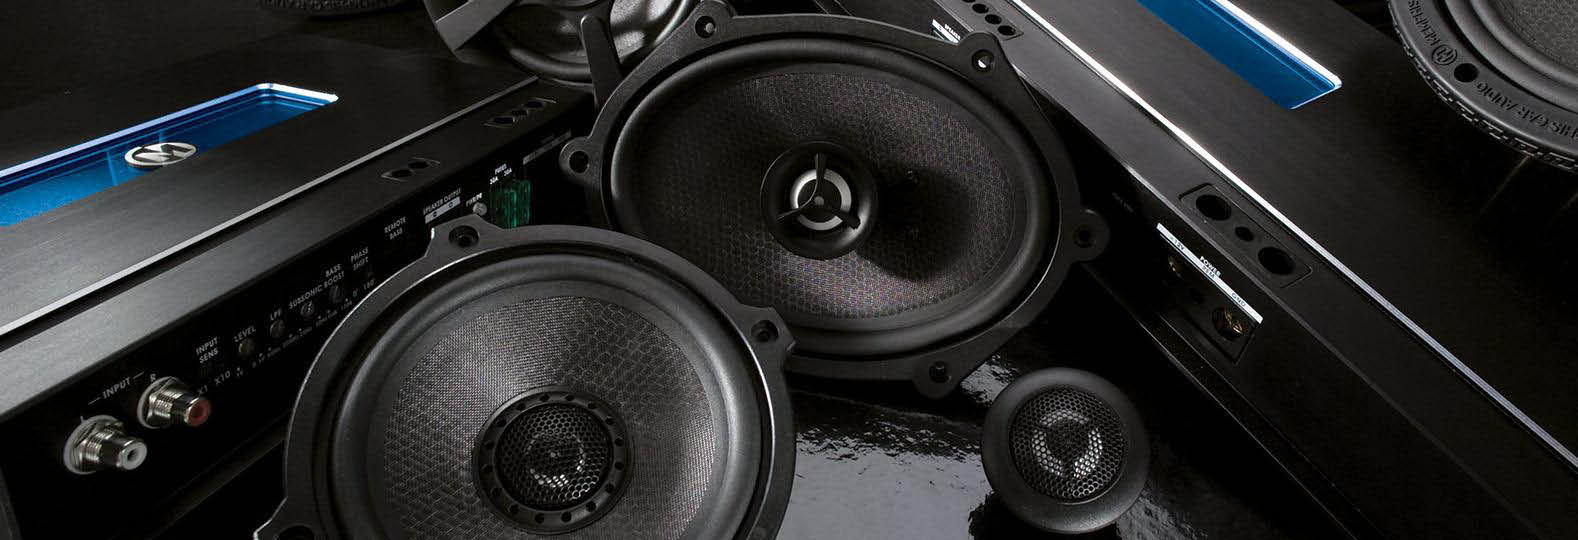 Sound Decisions in Racine, WI car audio sales, service and installations near Kenosha banner